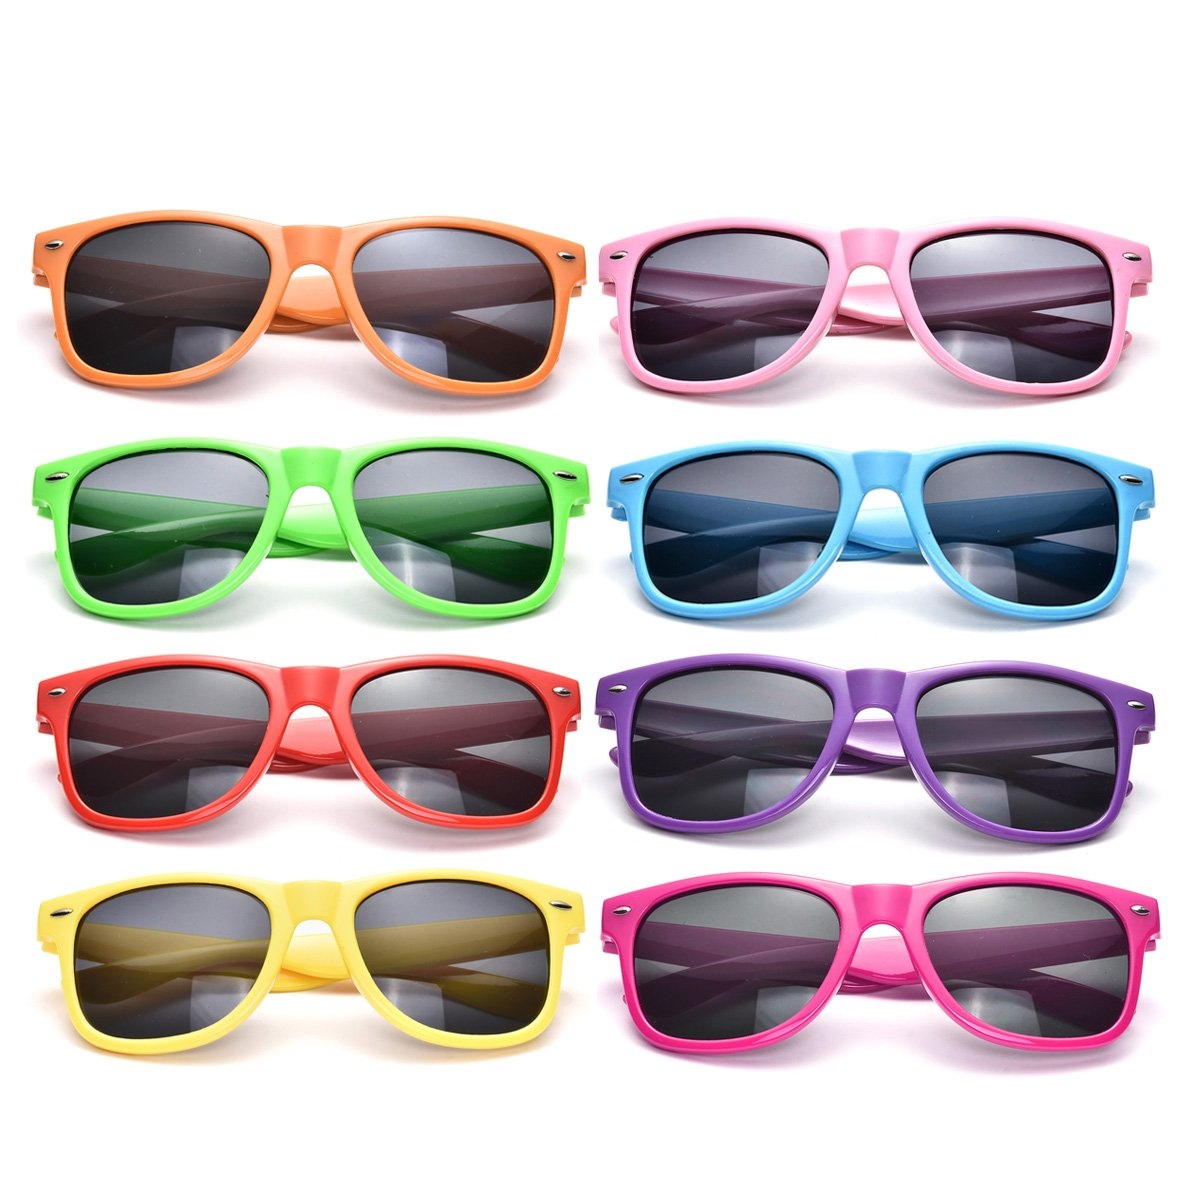 Neon Colors Party Favor Supplies Unisex Sunglasses Pack of 8 for Kids (8 Pack Mix) by Pibupibu (Image #3)